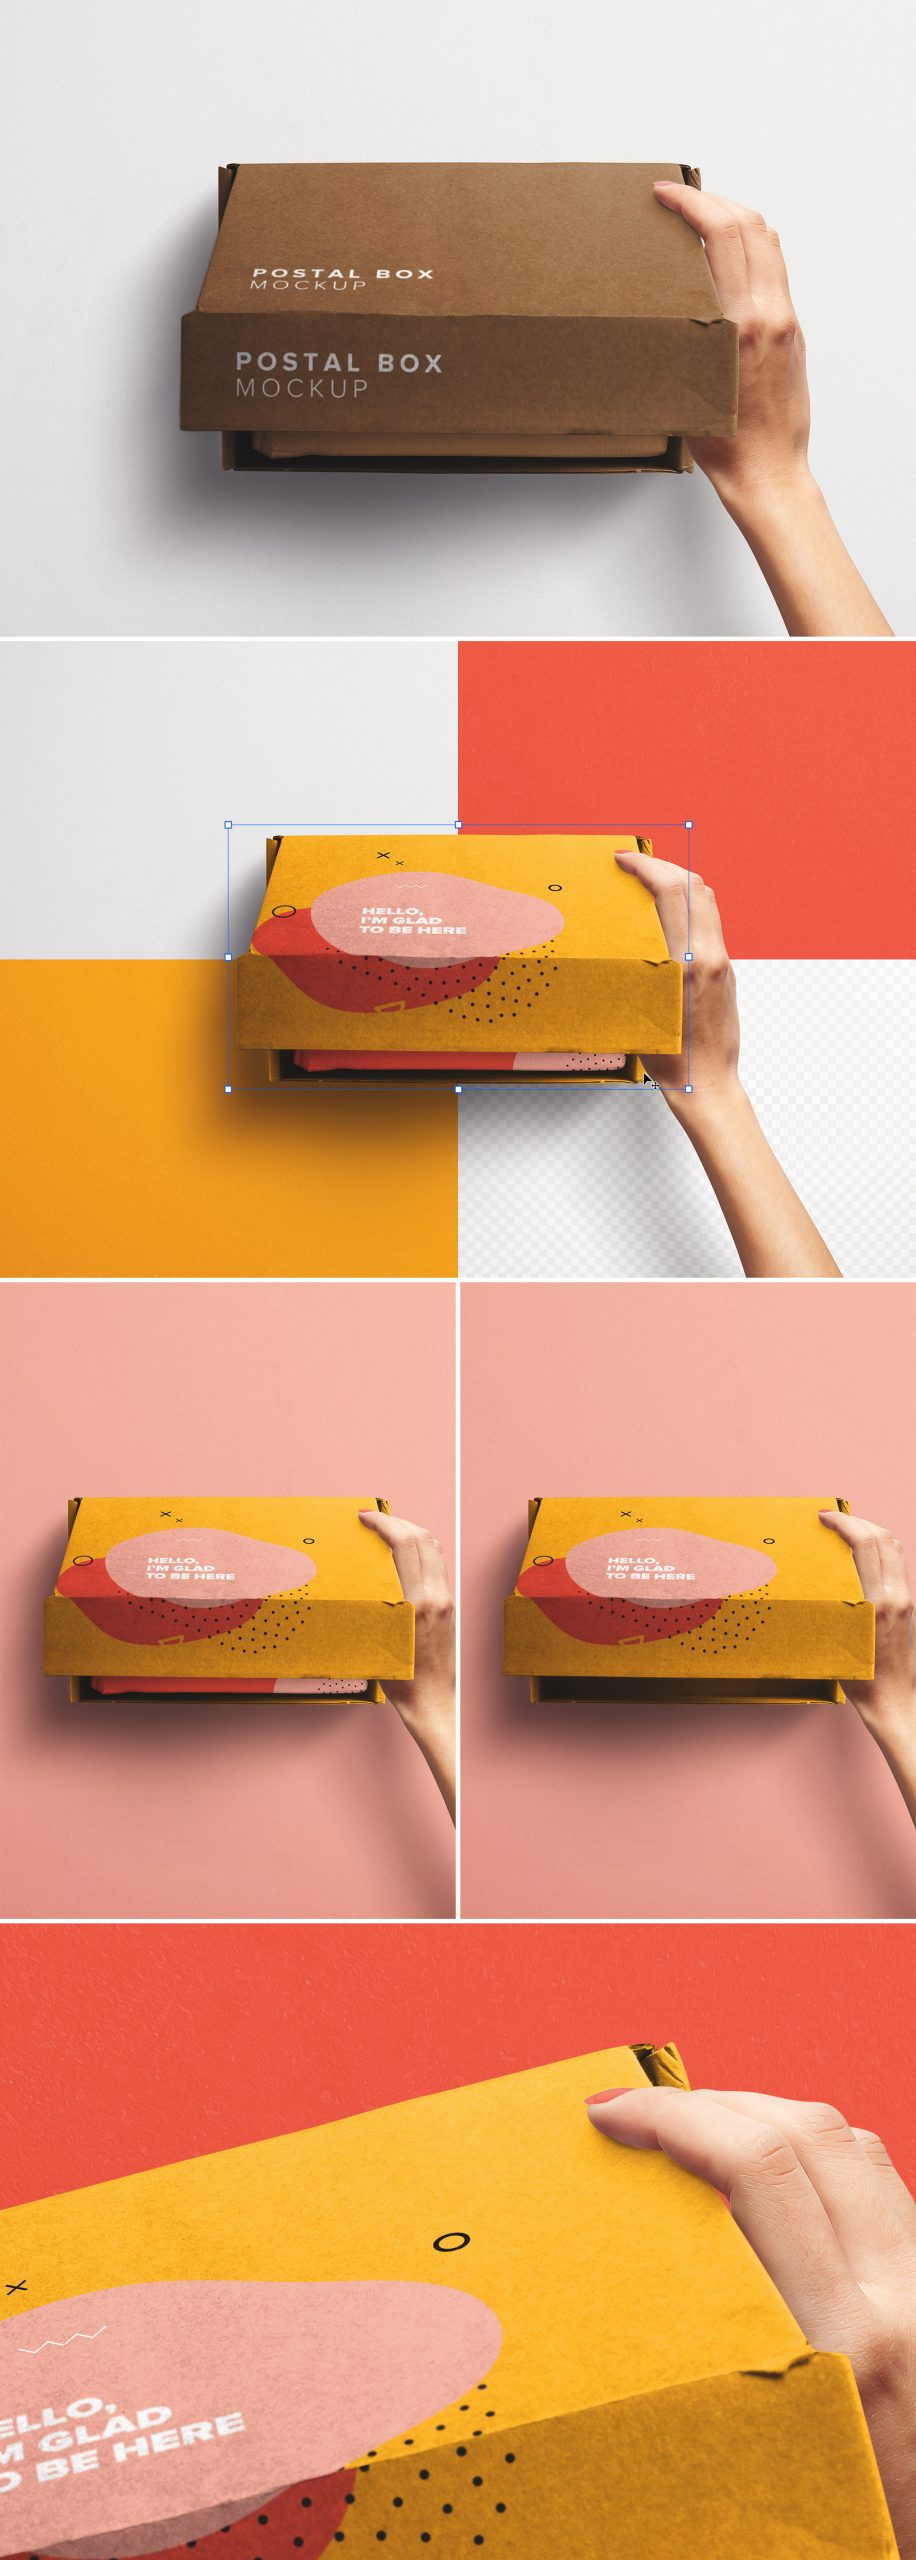 Hand Opening Postal Box Mockup preview scaled